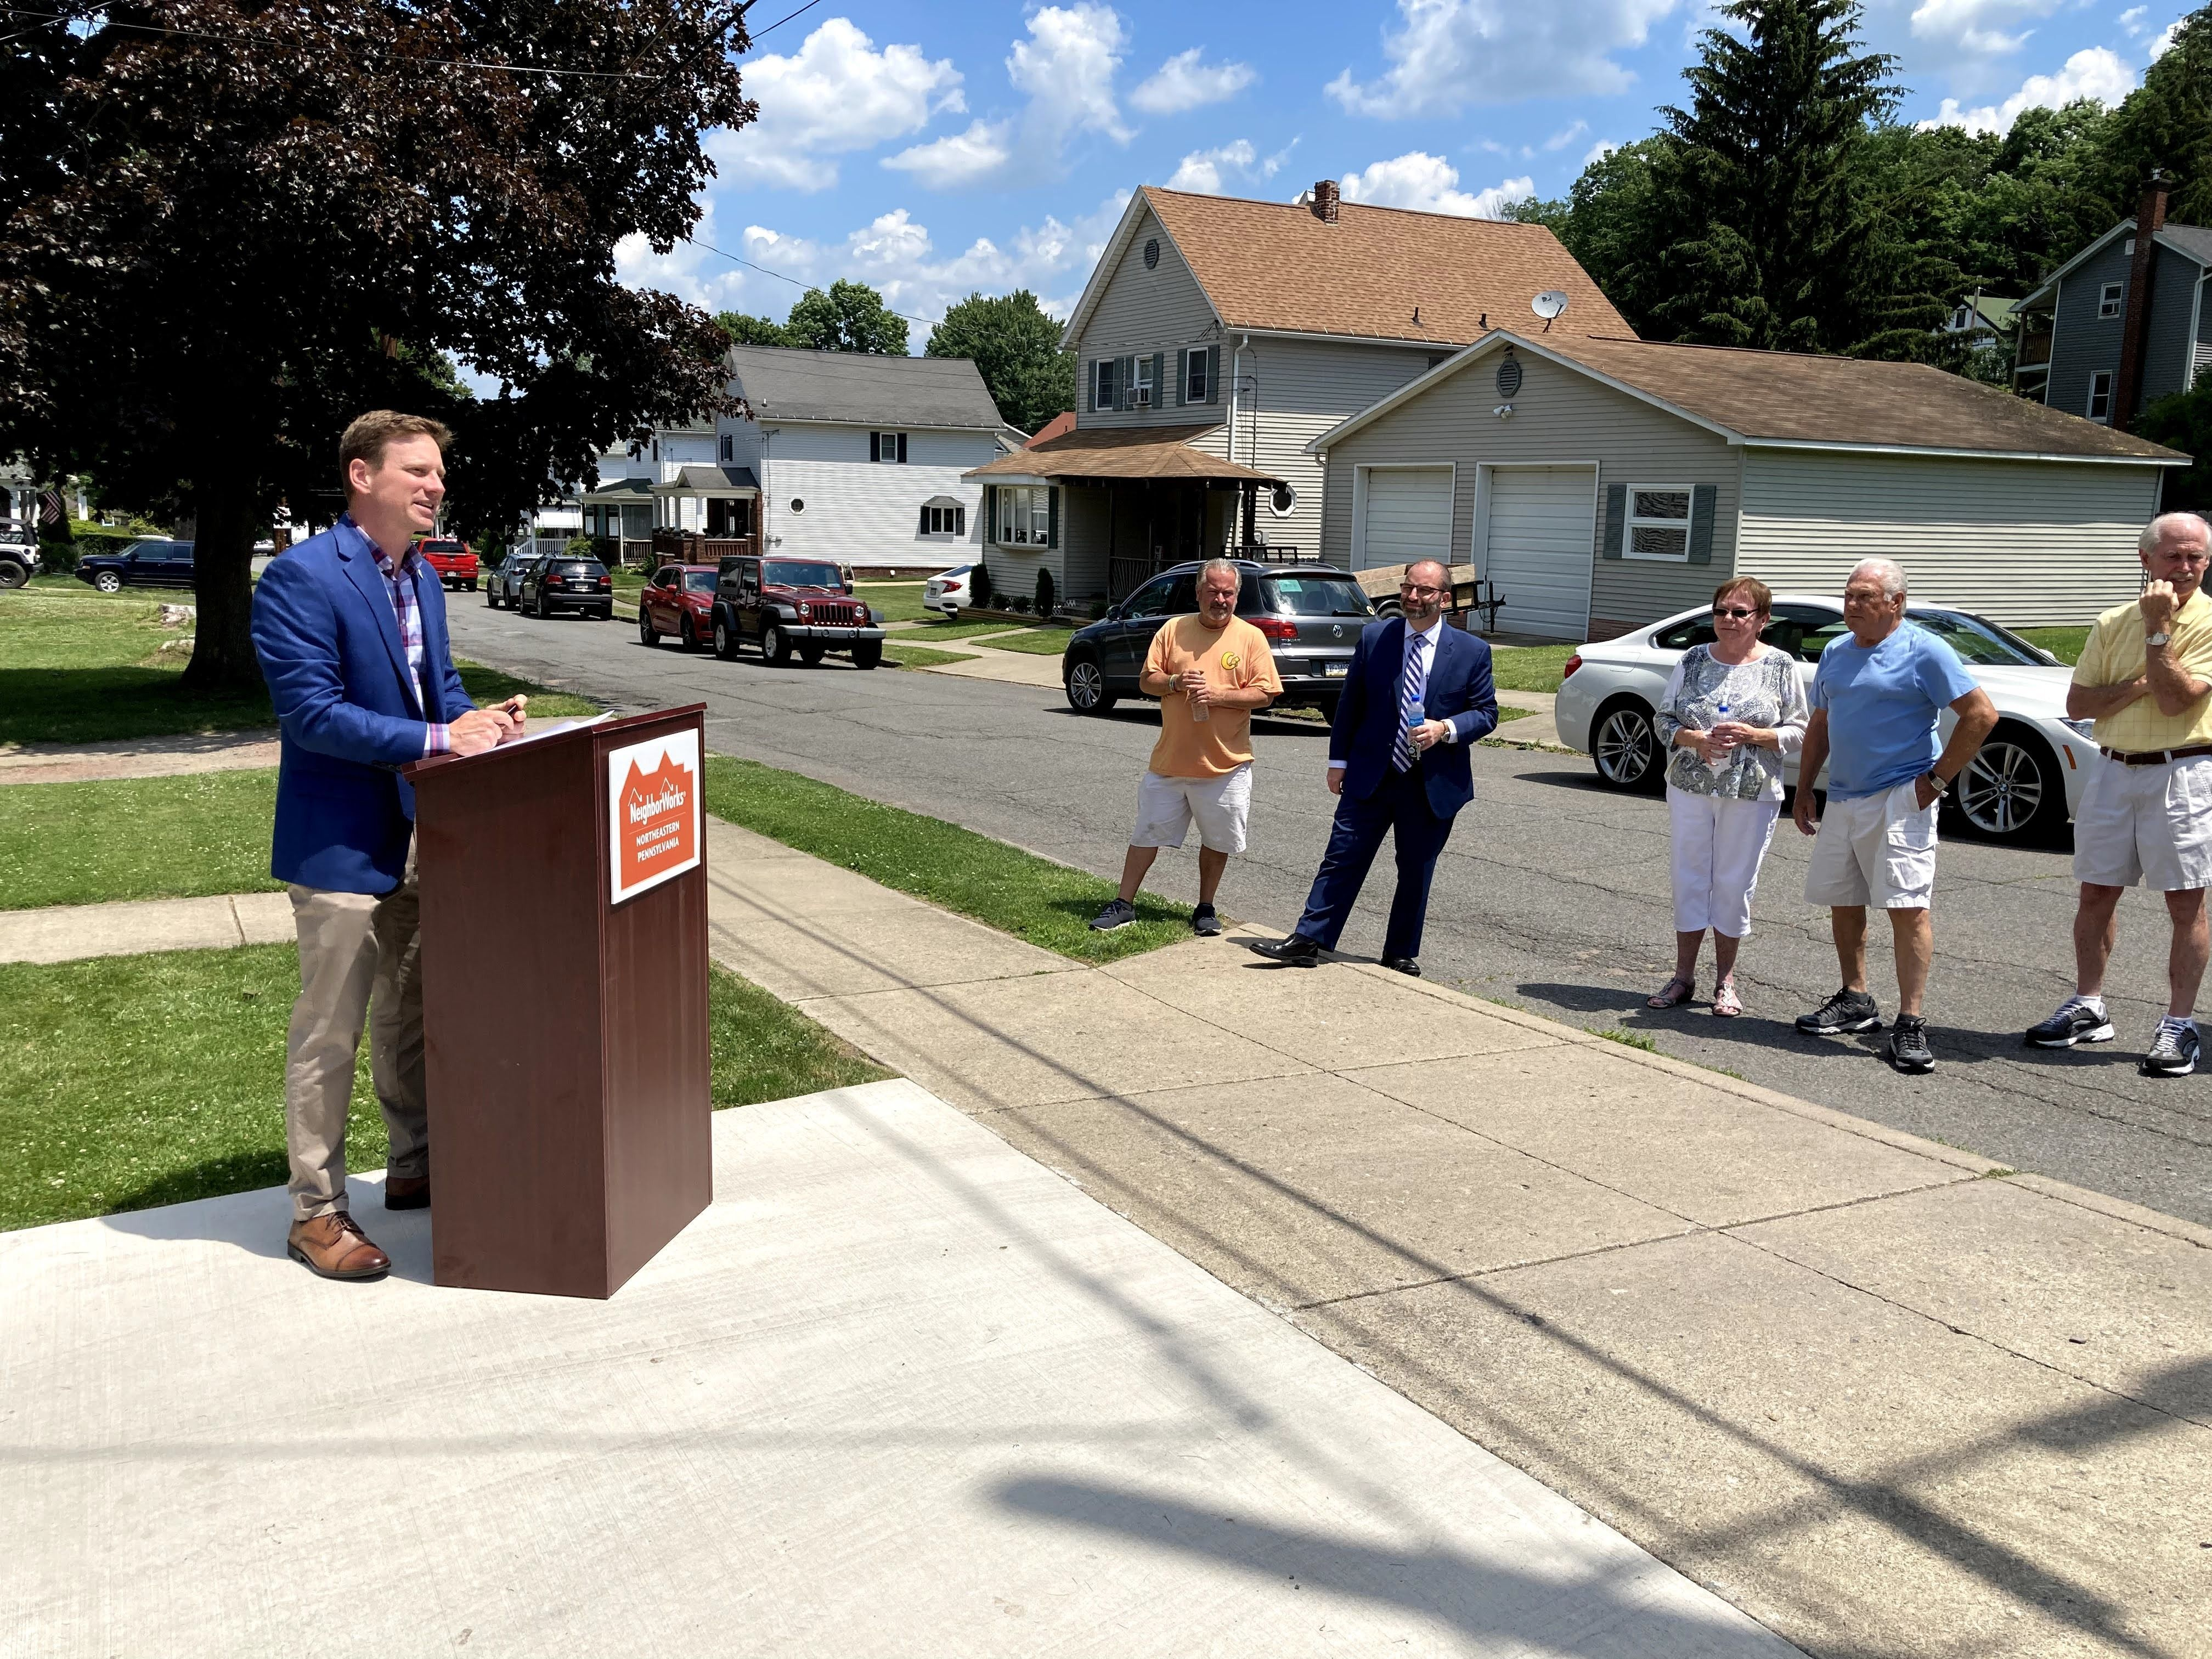 First Beautiful Blocks Home Improvement Grants Awarded in Carbondale